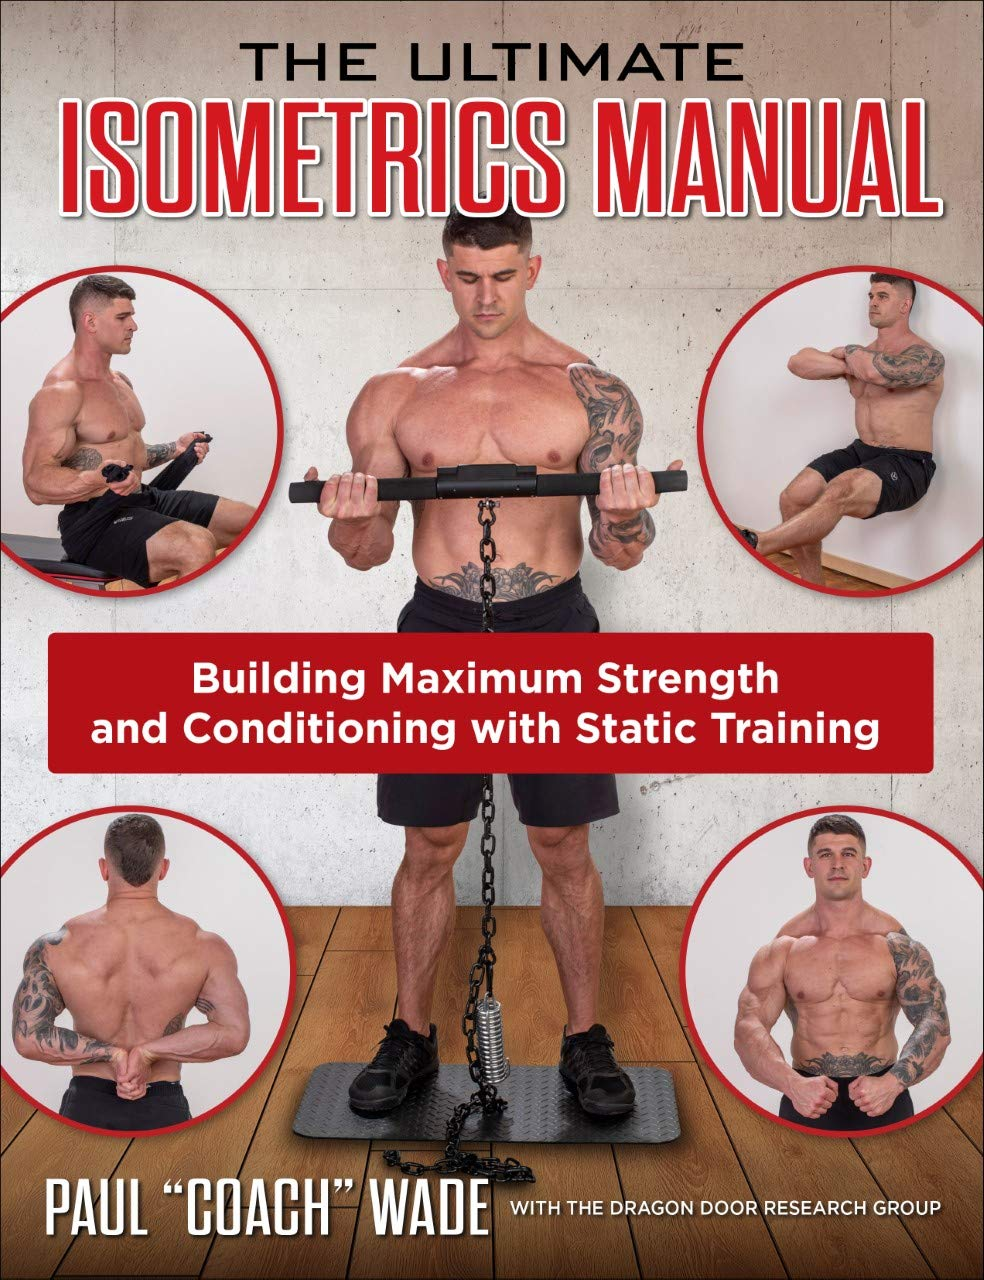 The Ultimate Isometrics Manual: Building Maximum Strength and Conditioning with Static Training